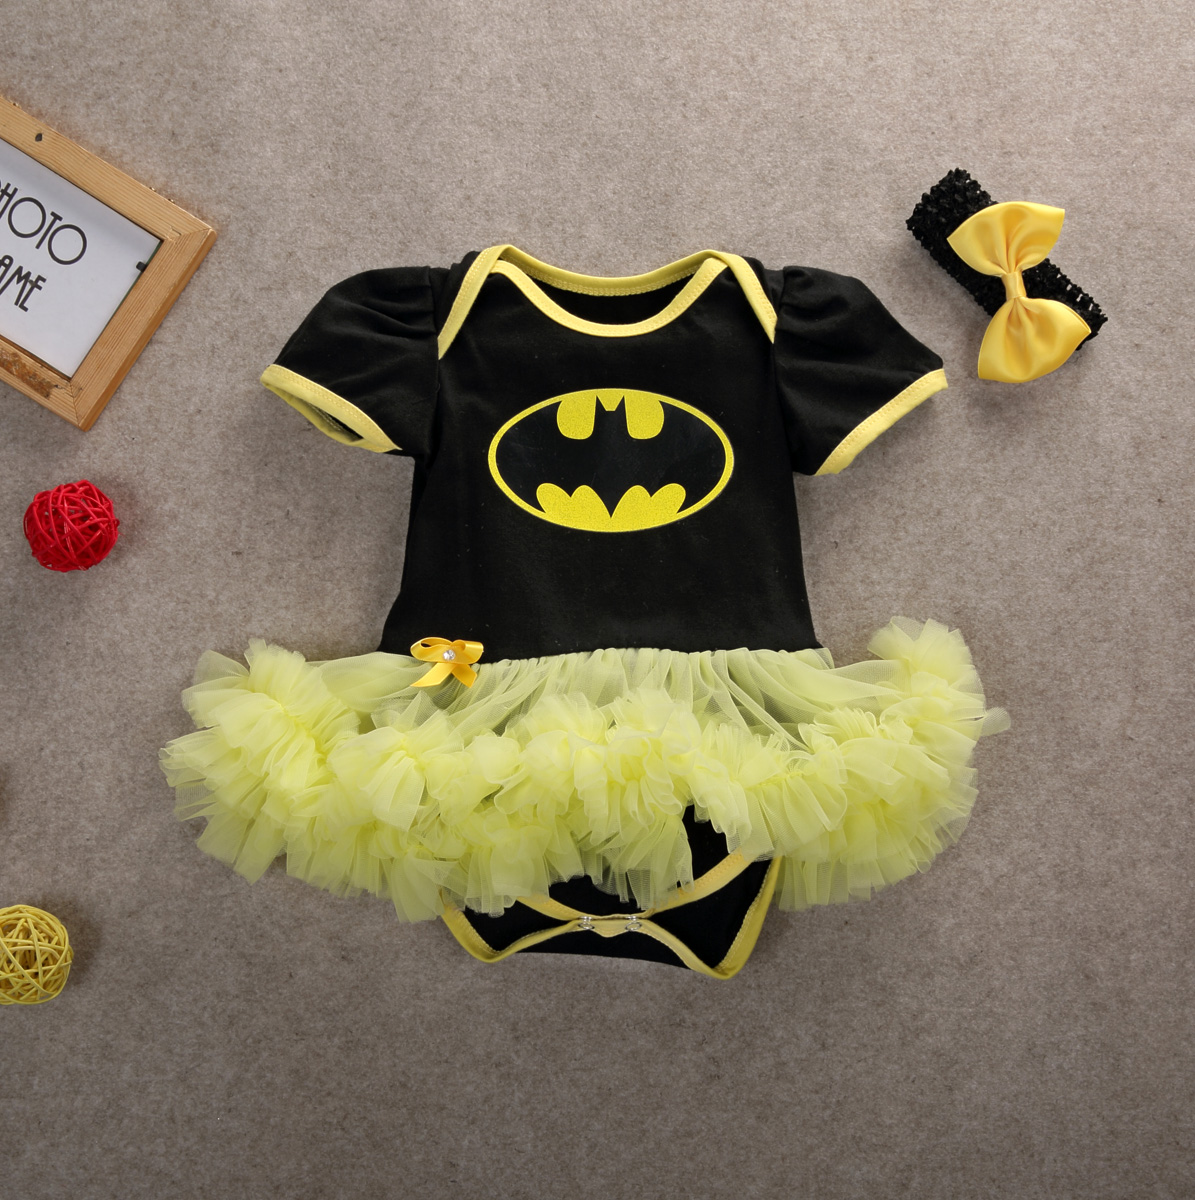 Pudcoco Girl Jumpsuits 0-12M Summer Baby Girls Cotton Batman   Romper   Tutu Tulle Dress Skirts + Headband Outfit